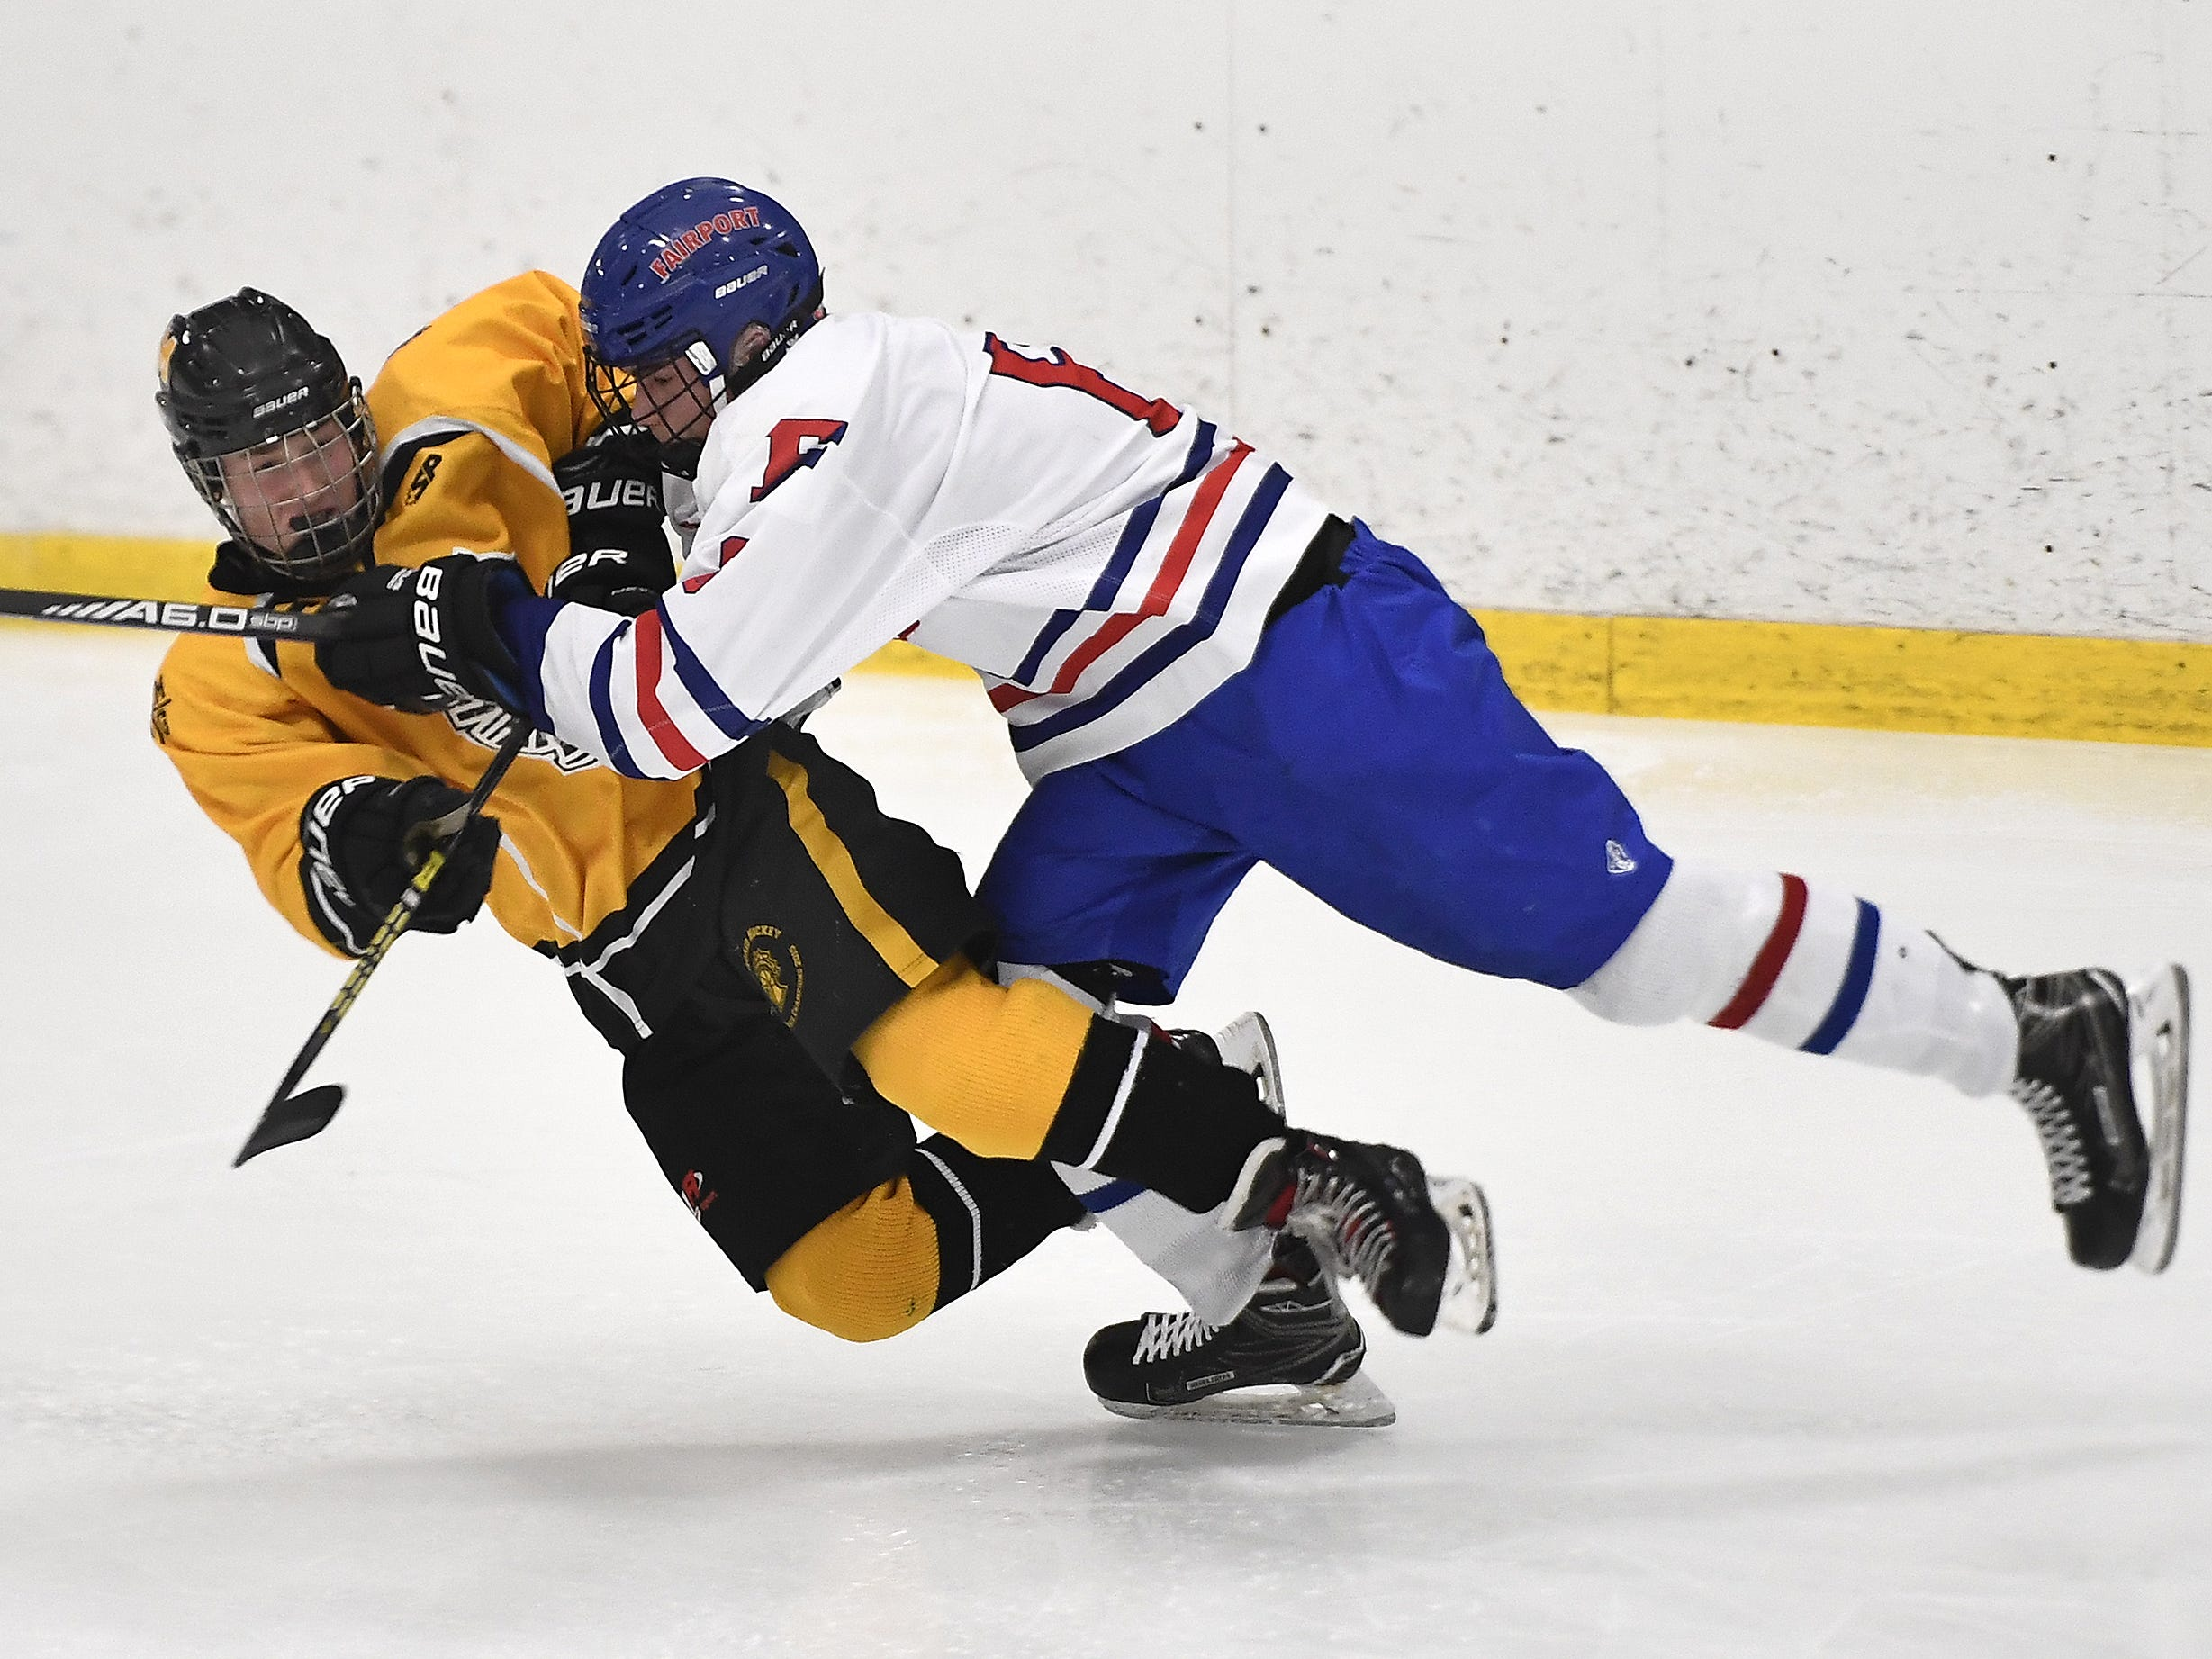 McQuaid's Sean Murray, left, gets a pass off before taking a hit from Fairport's Hunter McDonald during the second period of a regular season game played at the Rochester Ice Center, Wednesday, Feb. 6, 2019. McQuaid beat Fairport 5-4 in overtime.